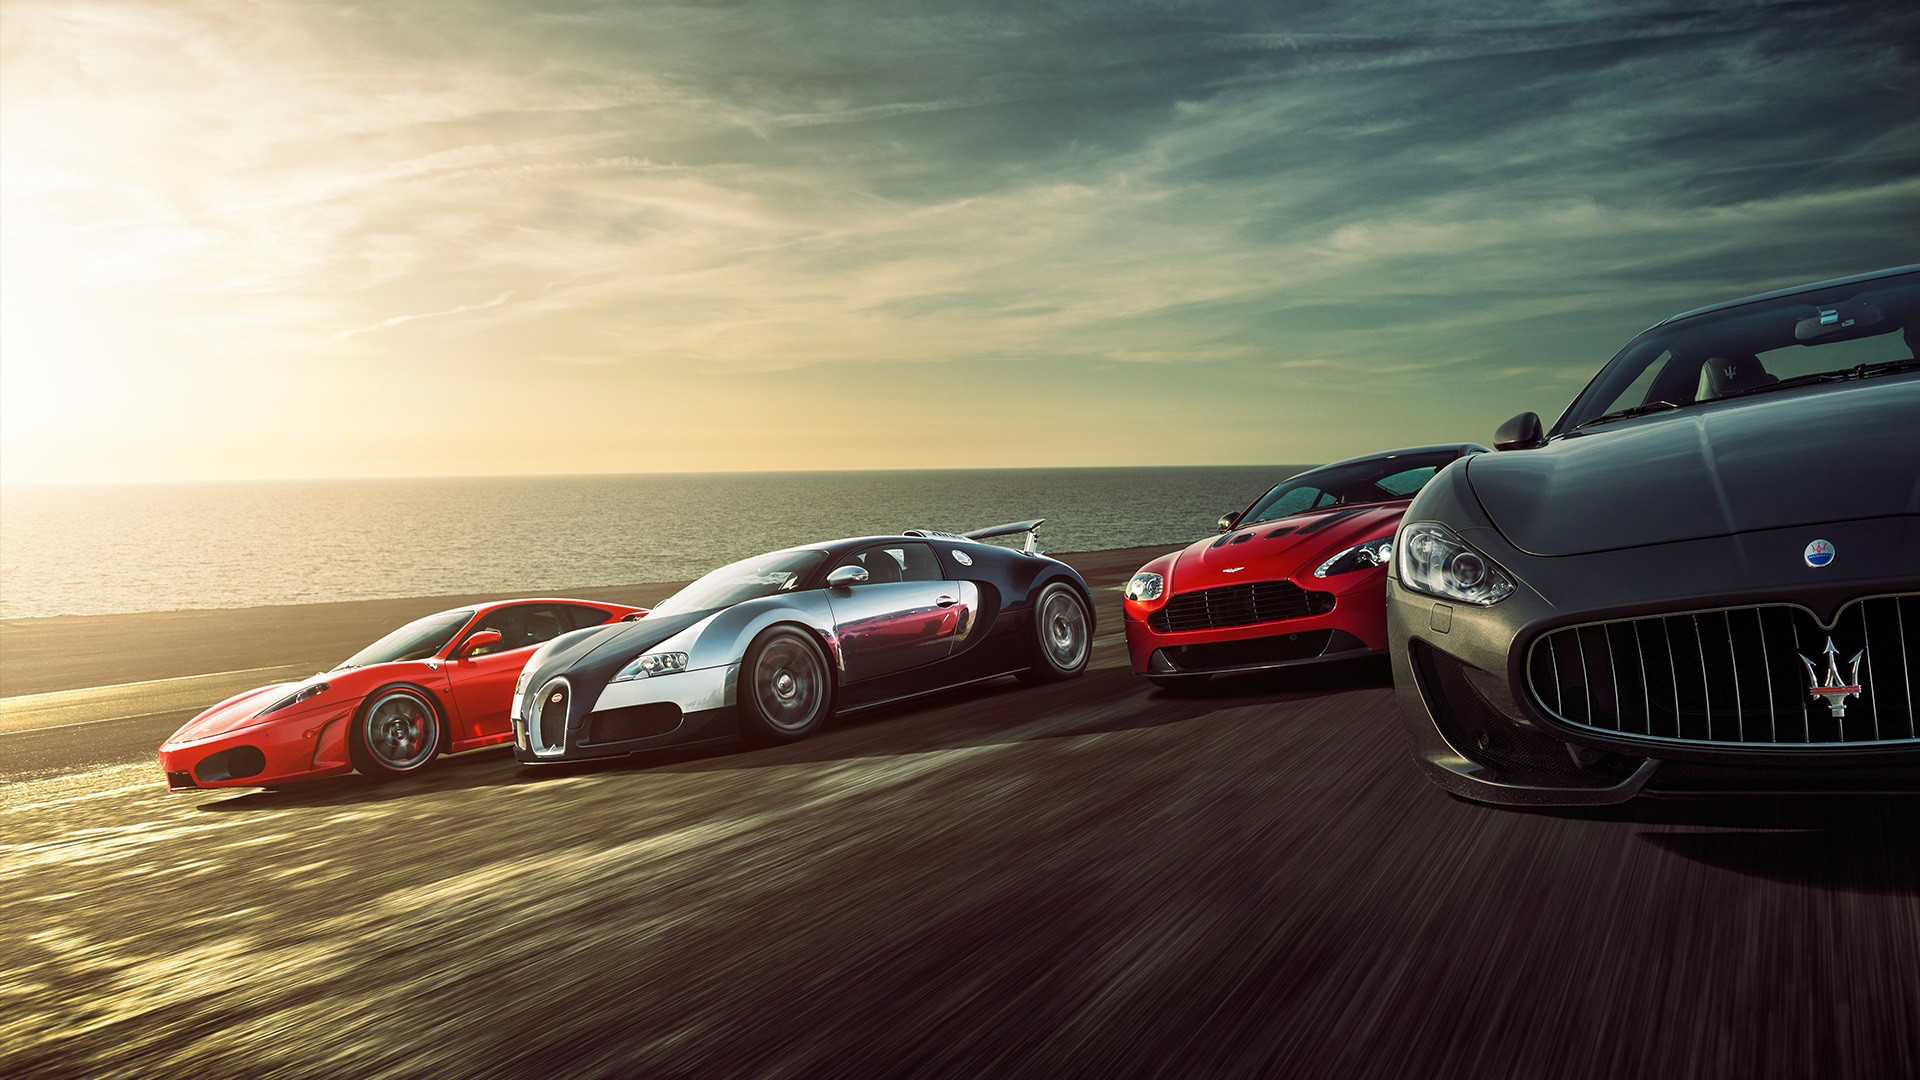 Amazing 1920x1080 Super Sports Cars